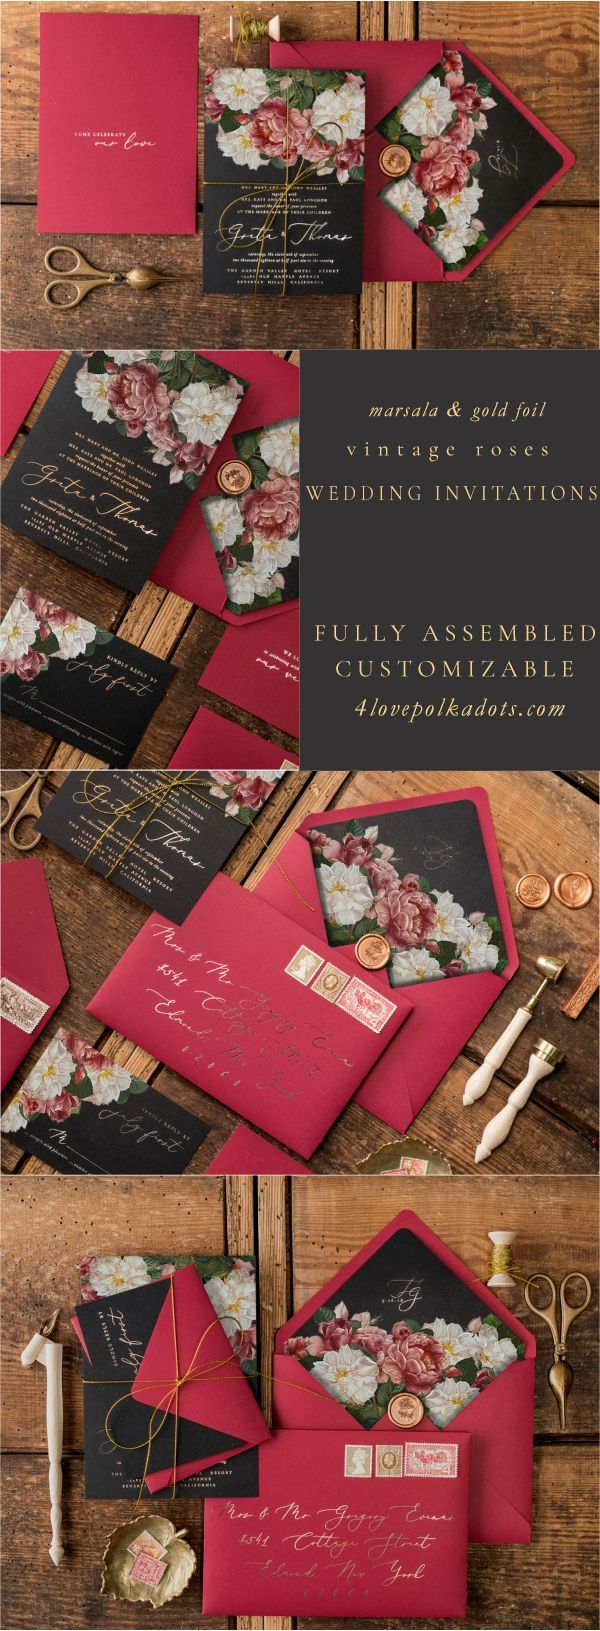 how to write muslim wedding invitation card%0A Marsala  u     Gold foil vintage roses wedding invitation  Fully assembled  u      completely customizable suit includes invitation card  envelope with liner